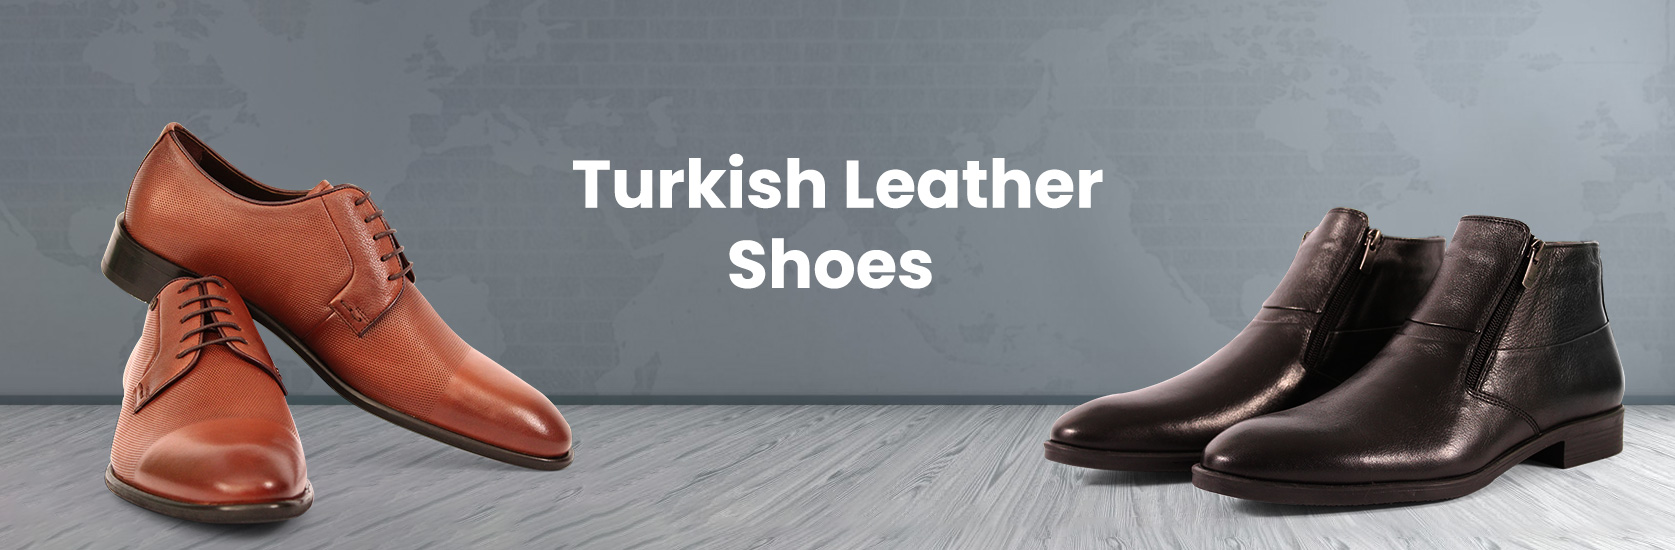 Why Turkish Leather Shoes are Famous Around the World?